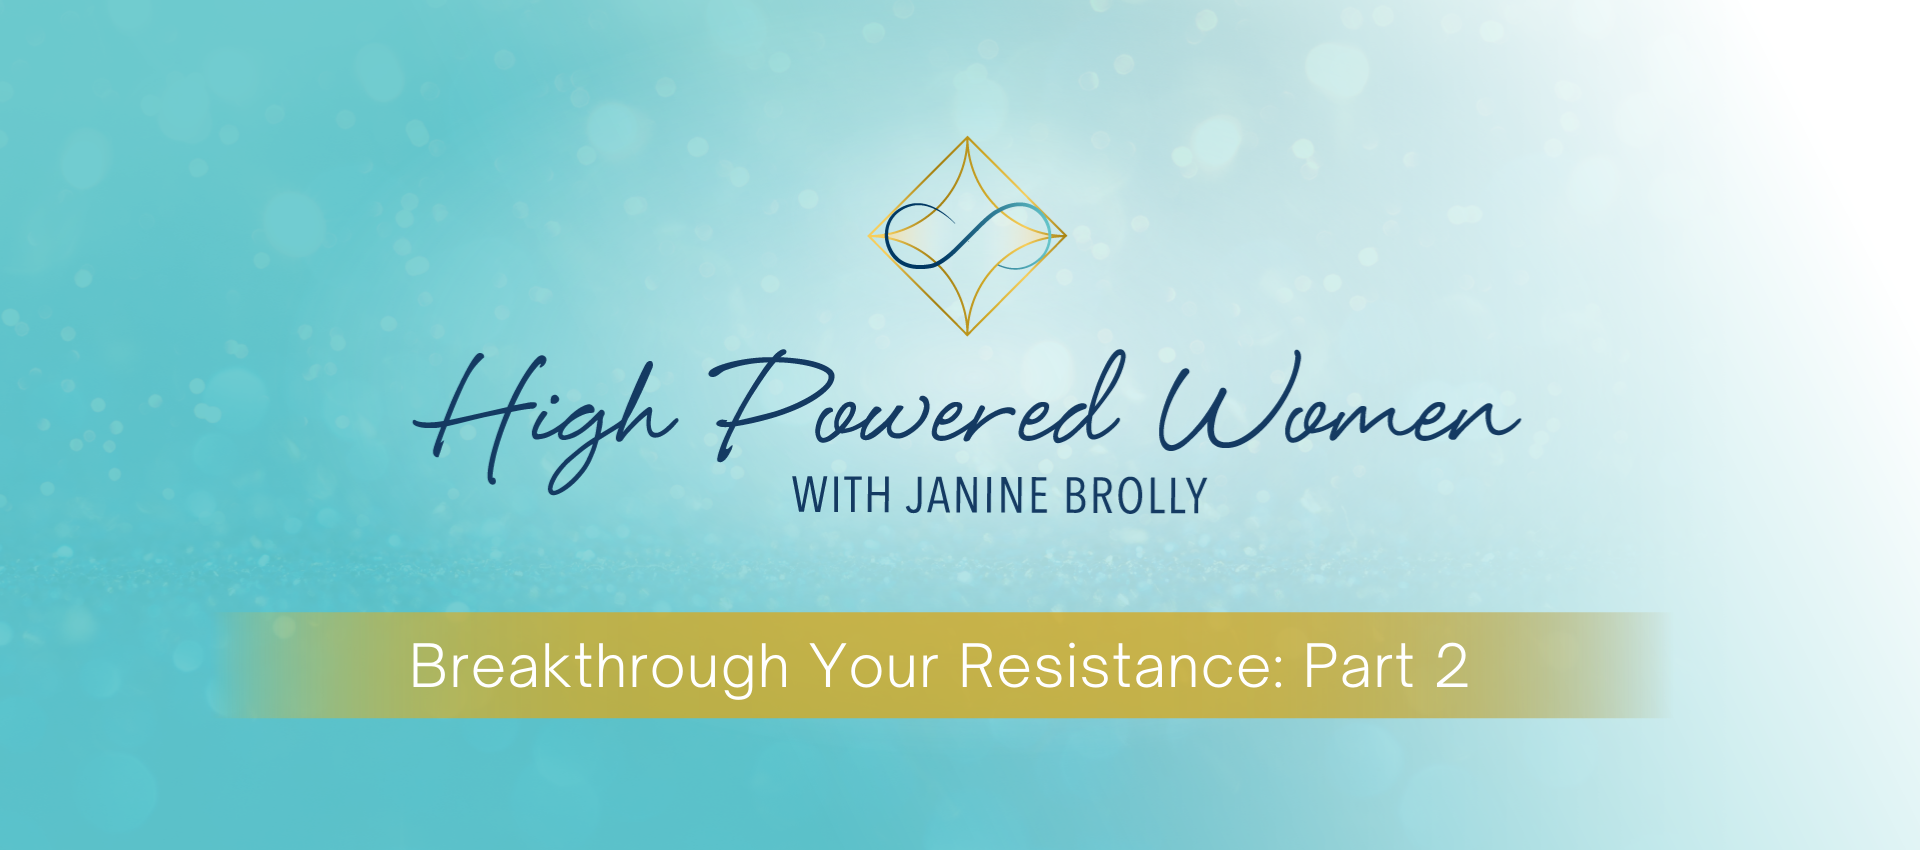 Breakthrough Your Resistance Part 2